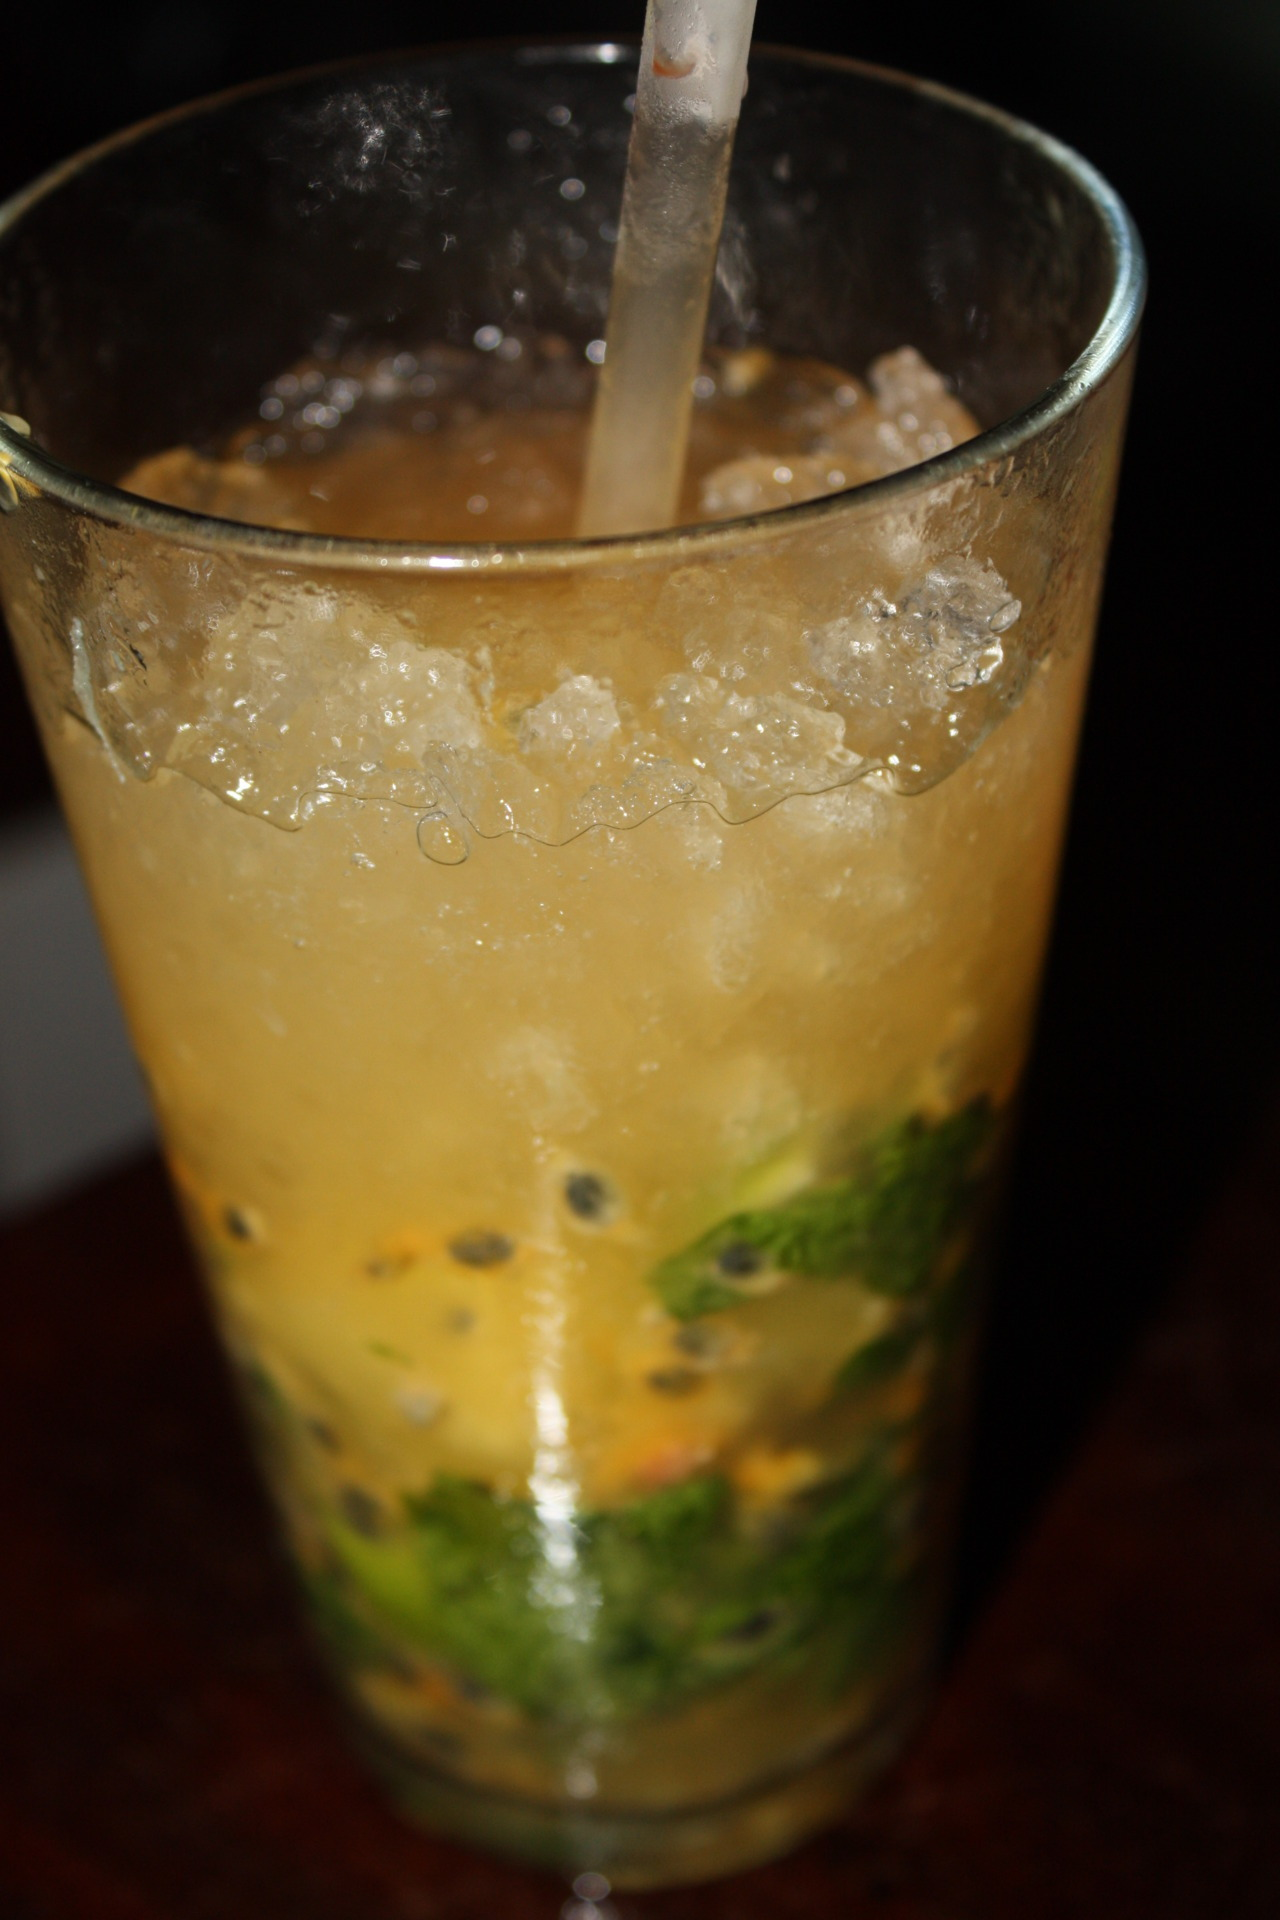 Passion Fruit Mojito Ingredients:1 Spoon White Sugar 2 Oz White Rum (Bambu or Matusalem)Hand full of mint leaves Half of a Lime Cut into 3 Wedges Splash of Club Aoda 1 Oz Passion Fruit (puree or one fresh passion fruit contents)1.5 Oz Sweet and Sour Mix Crushed Ice *Game changer.